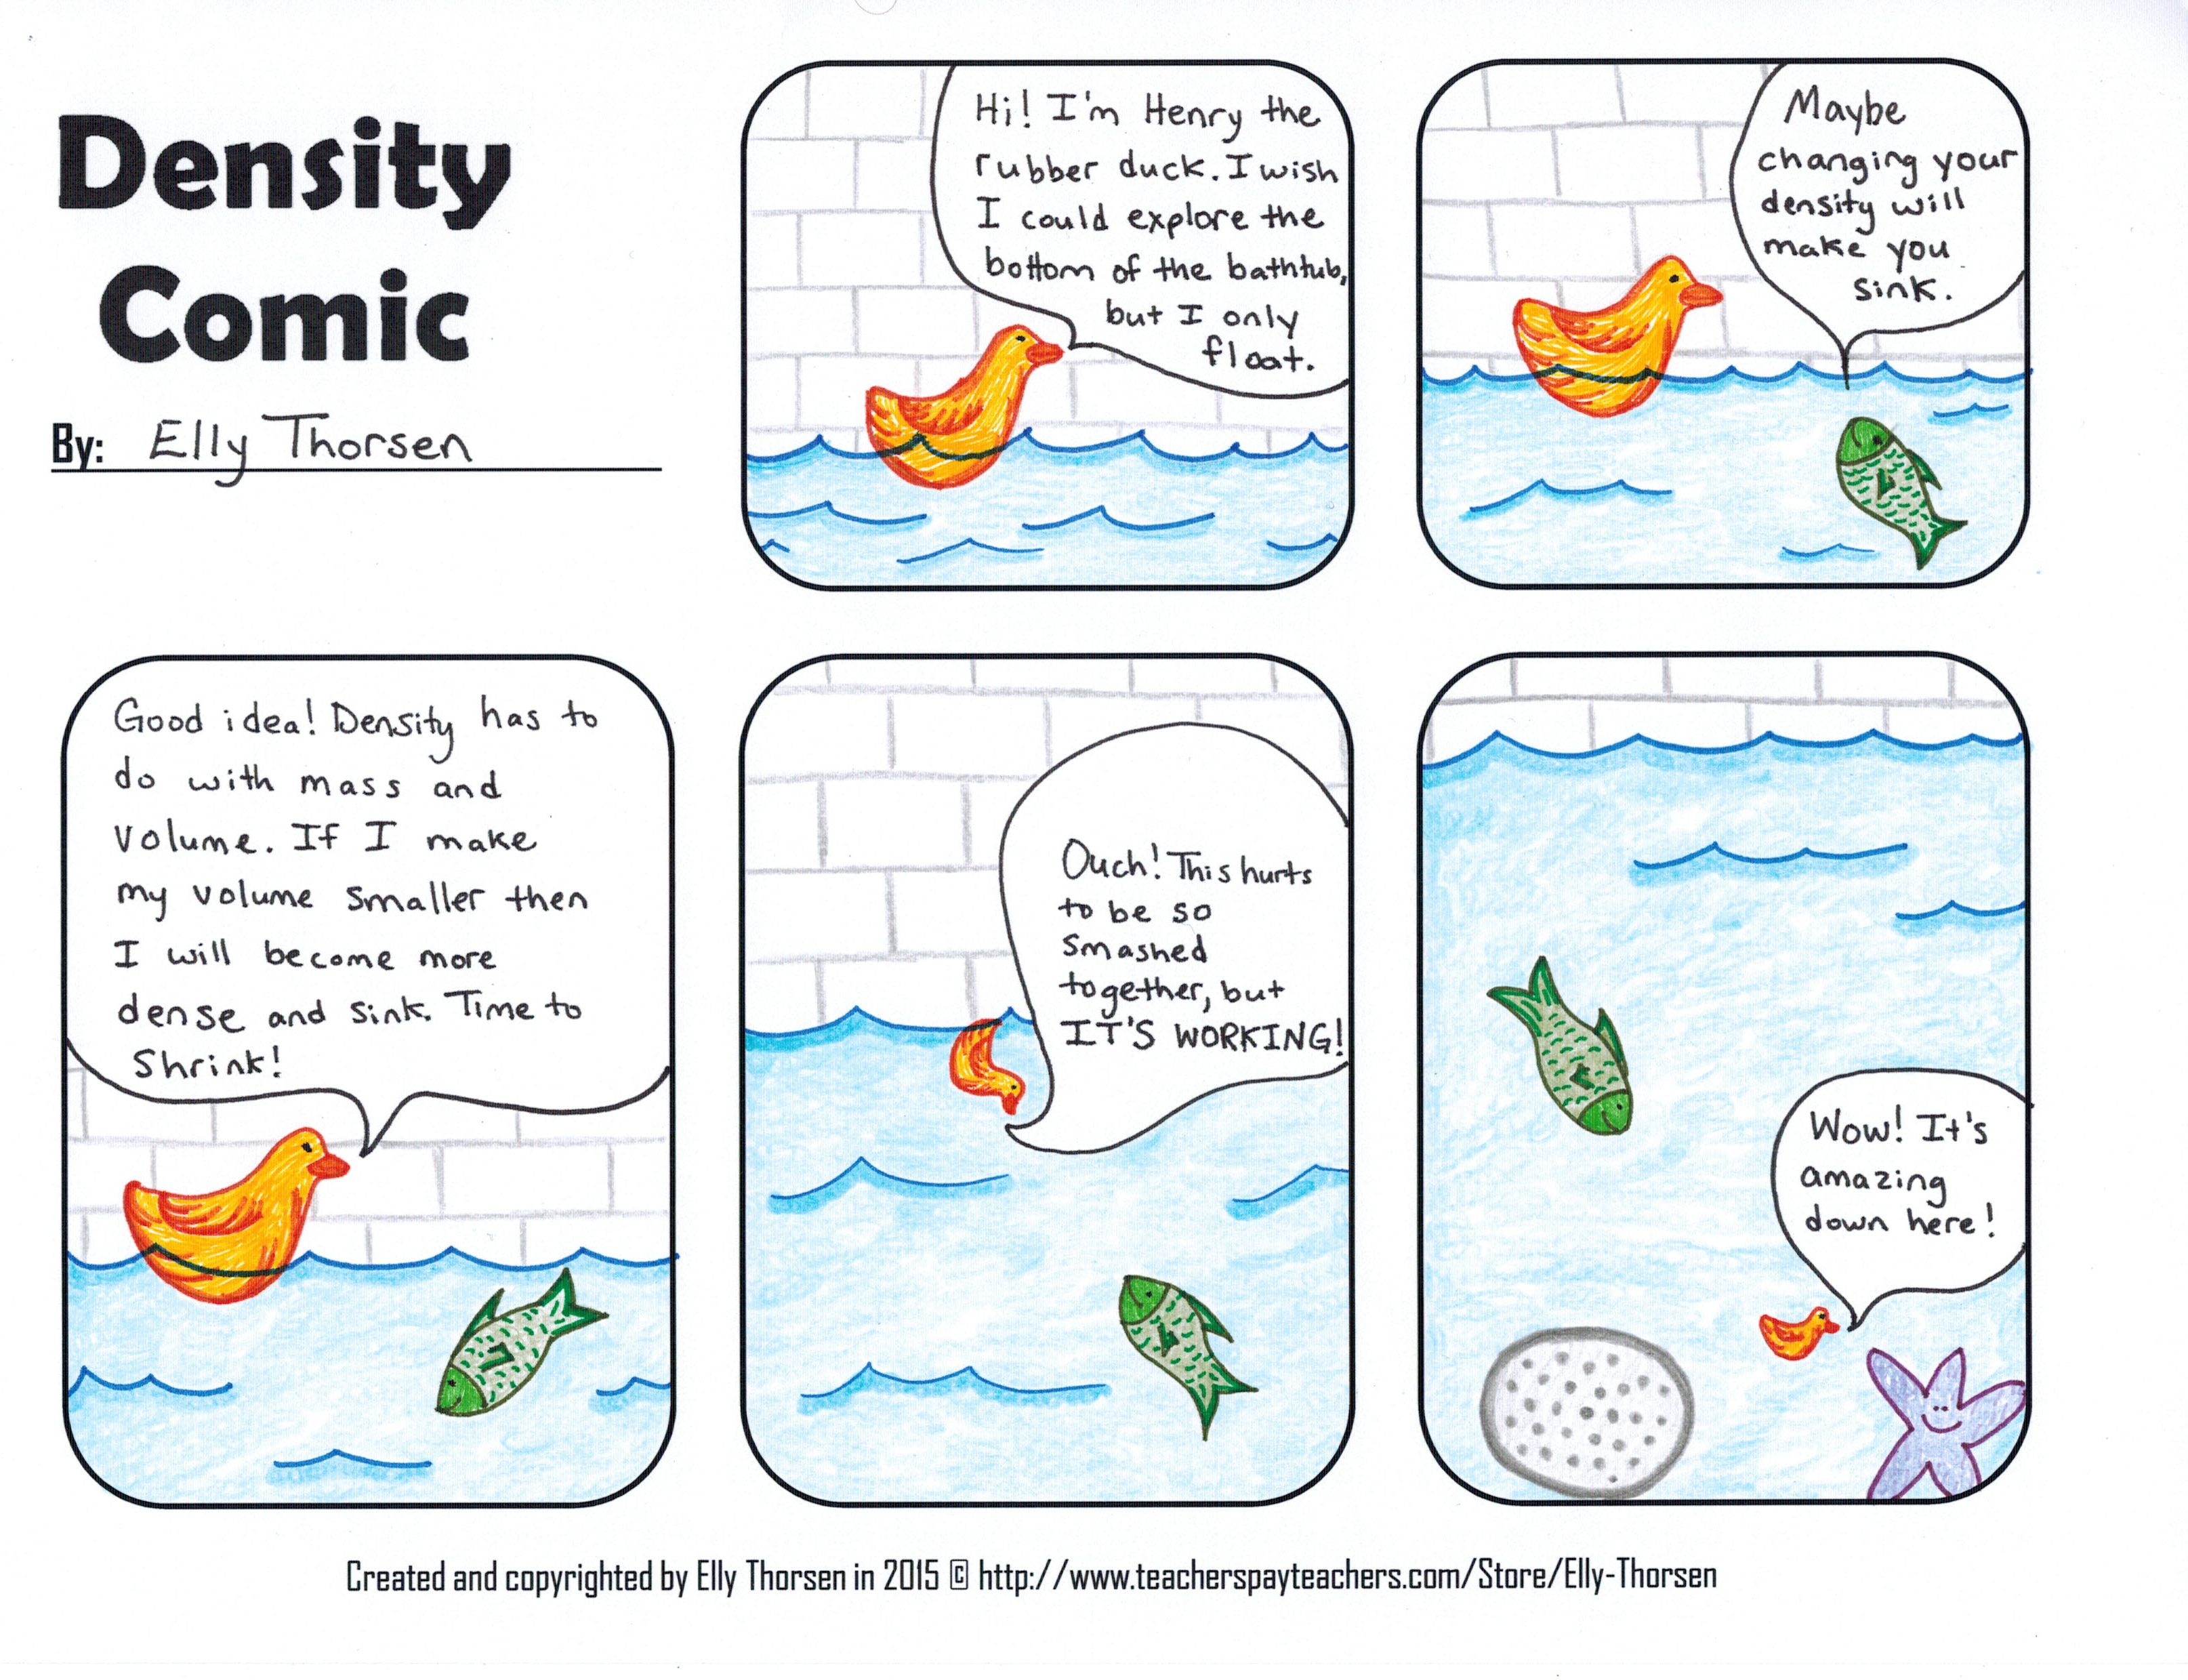 Fun Density Comic For Middle School Science